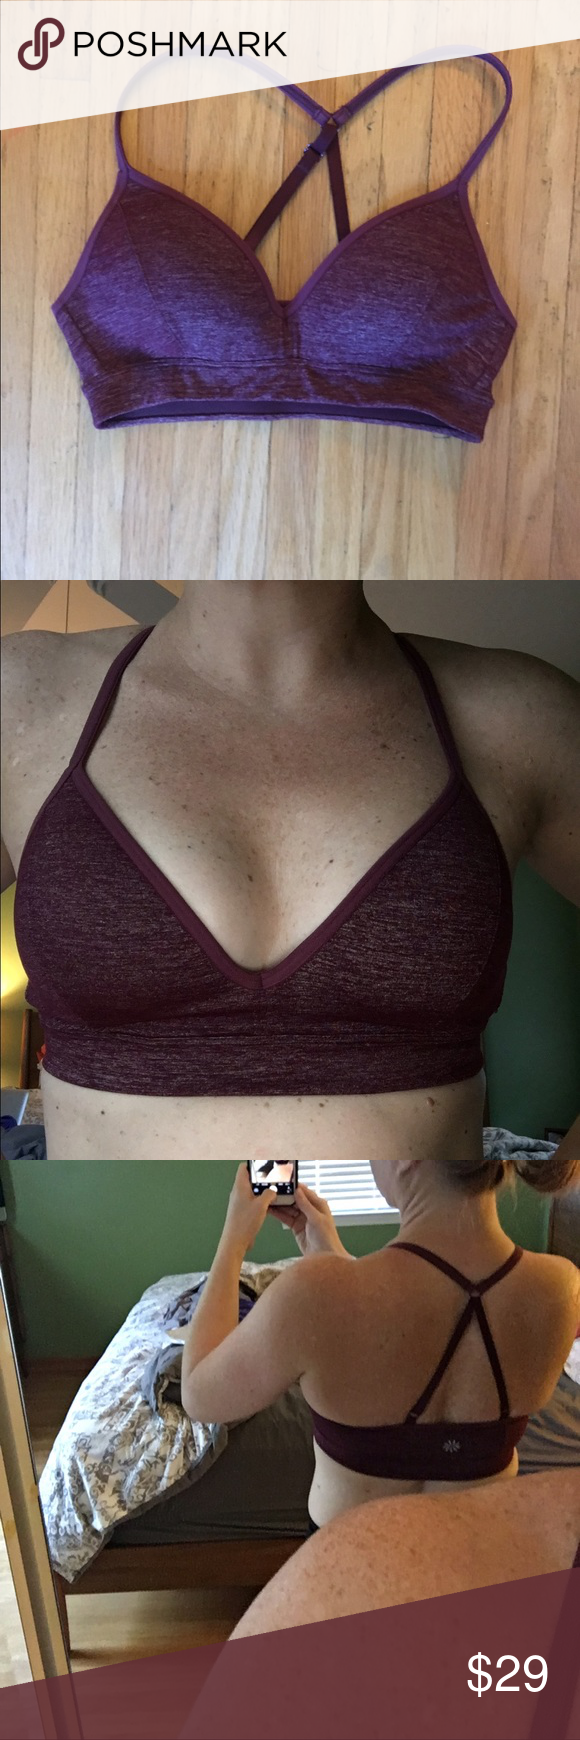 3ed88fe229375 Athleta Wherever Bra - XS - New without tags I m in love with this ...